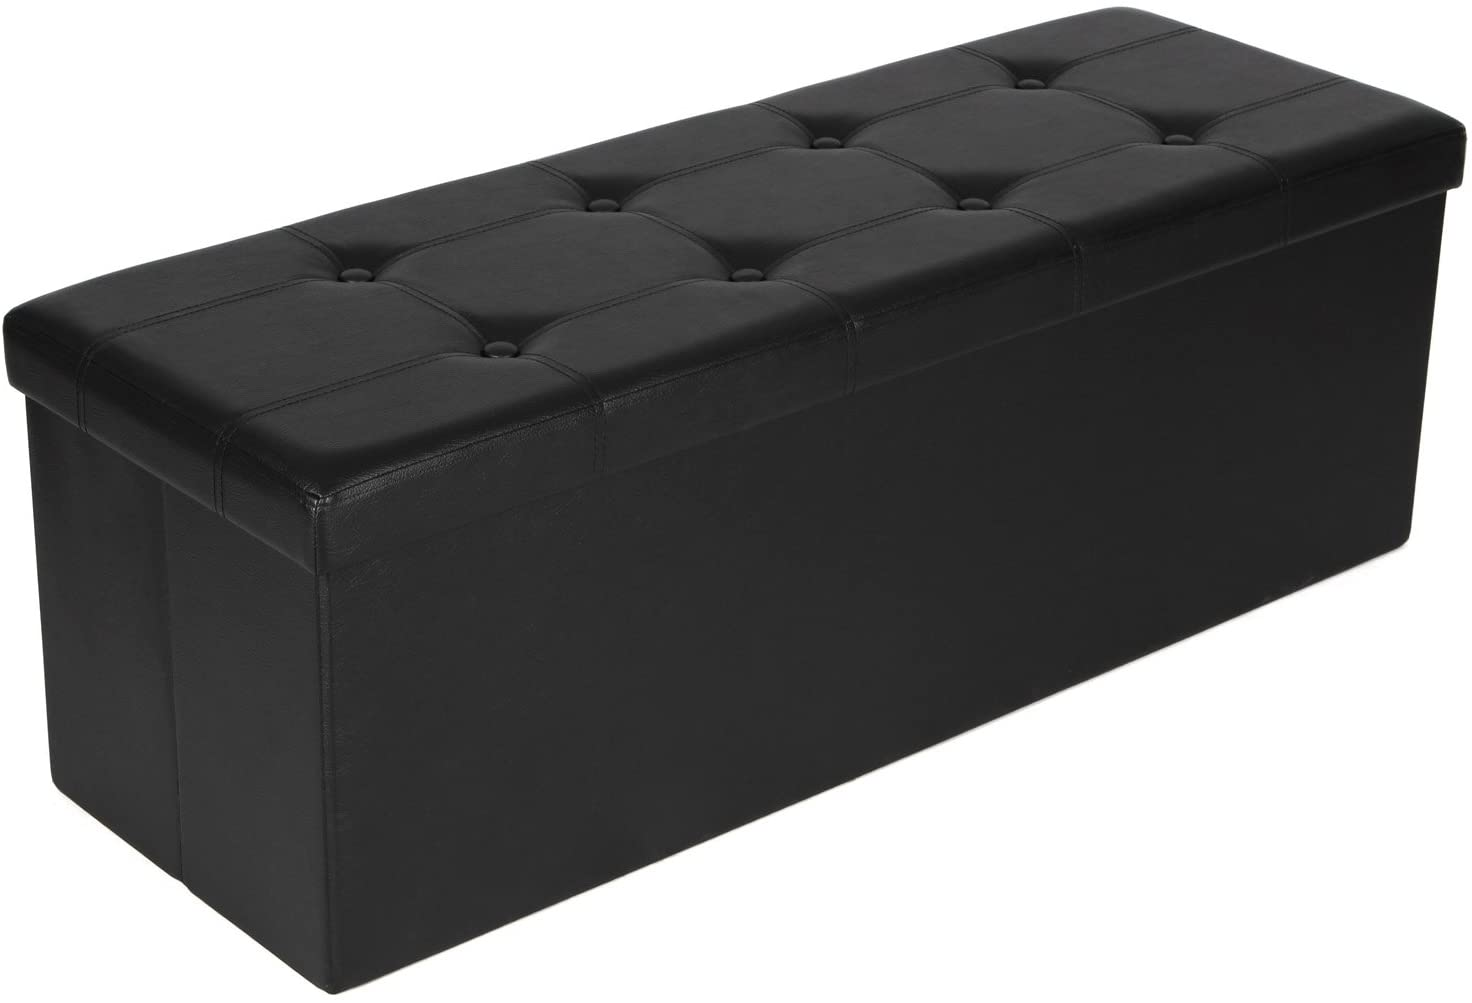 Classier: Buy SONGMICS SONGMICS 43 Inches Folding Storage Ottoman Bench, Storage Chest Footrest Padded Seat, Faux Leather, Black ULSF701